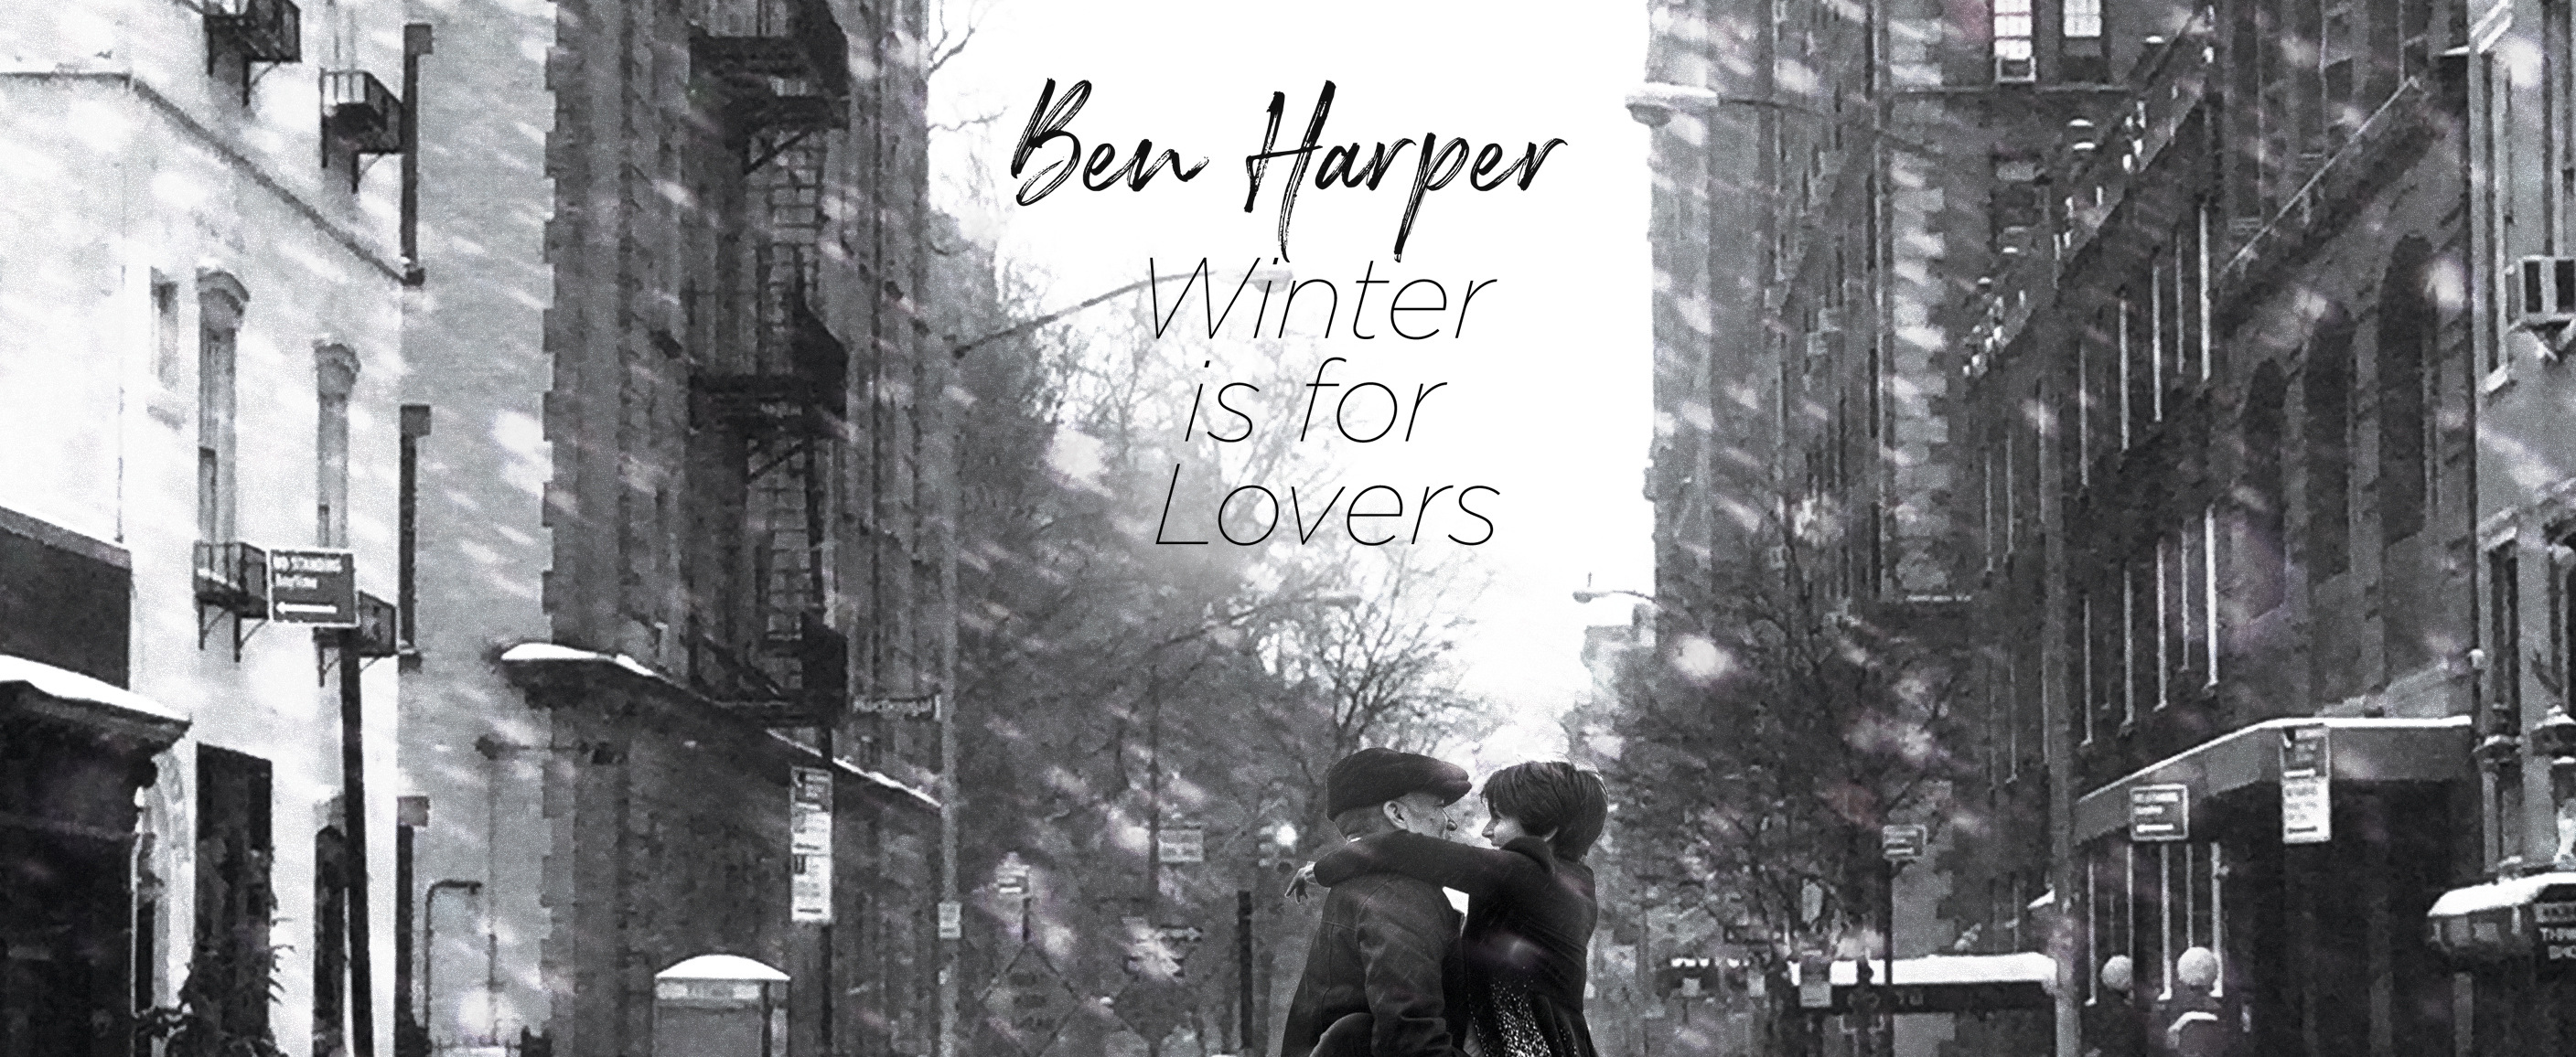 Ben Harper - Winter Is For Lovers - Preorder Now on ANTI- Records